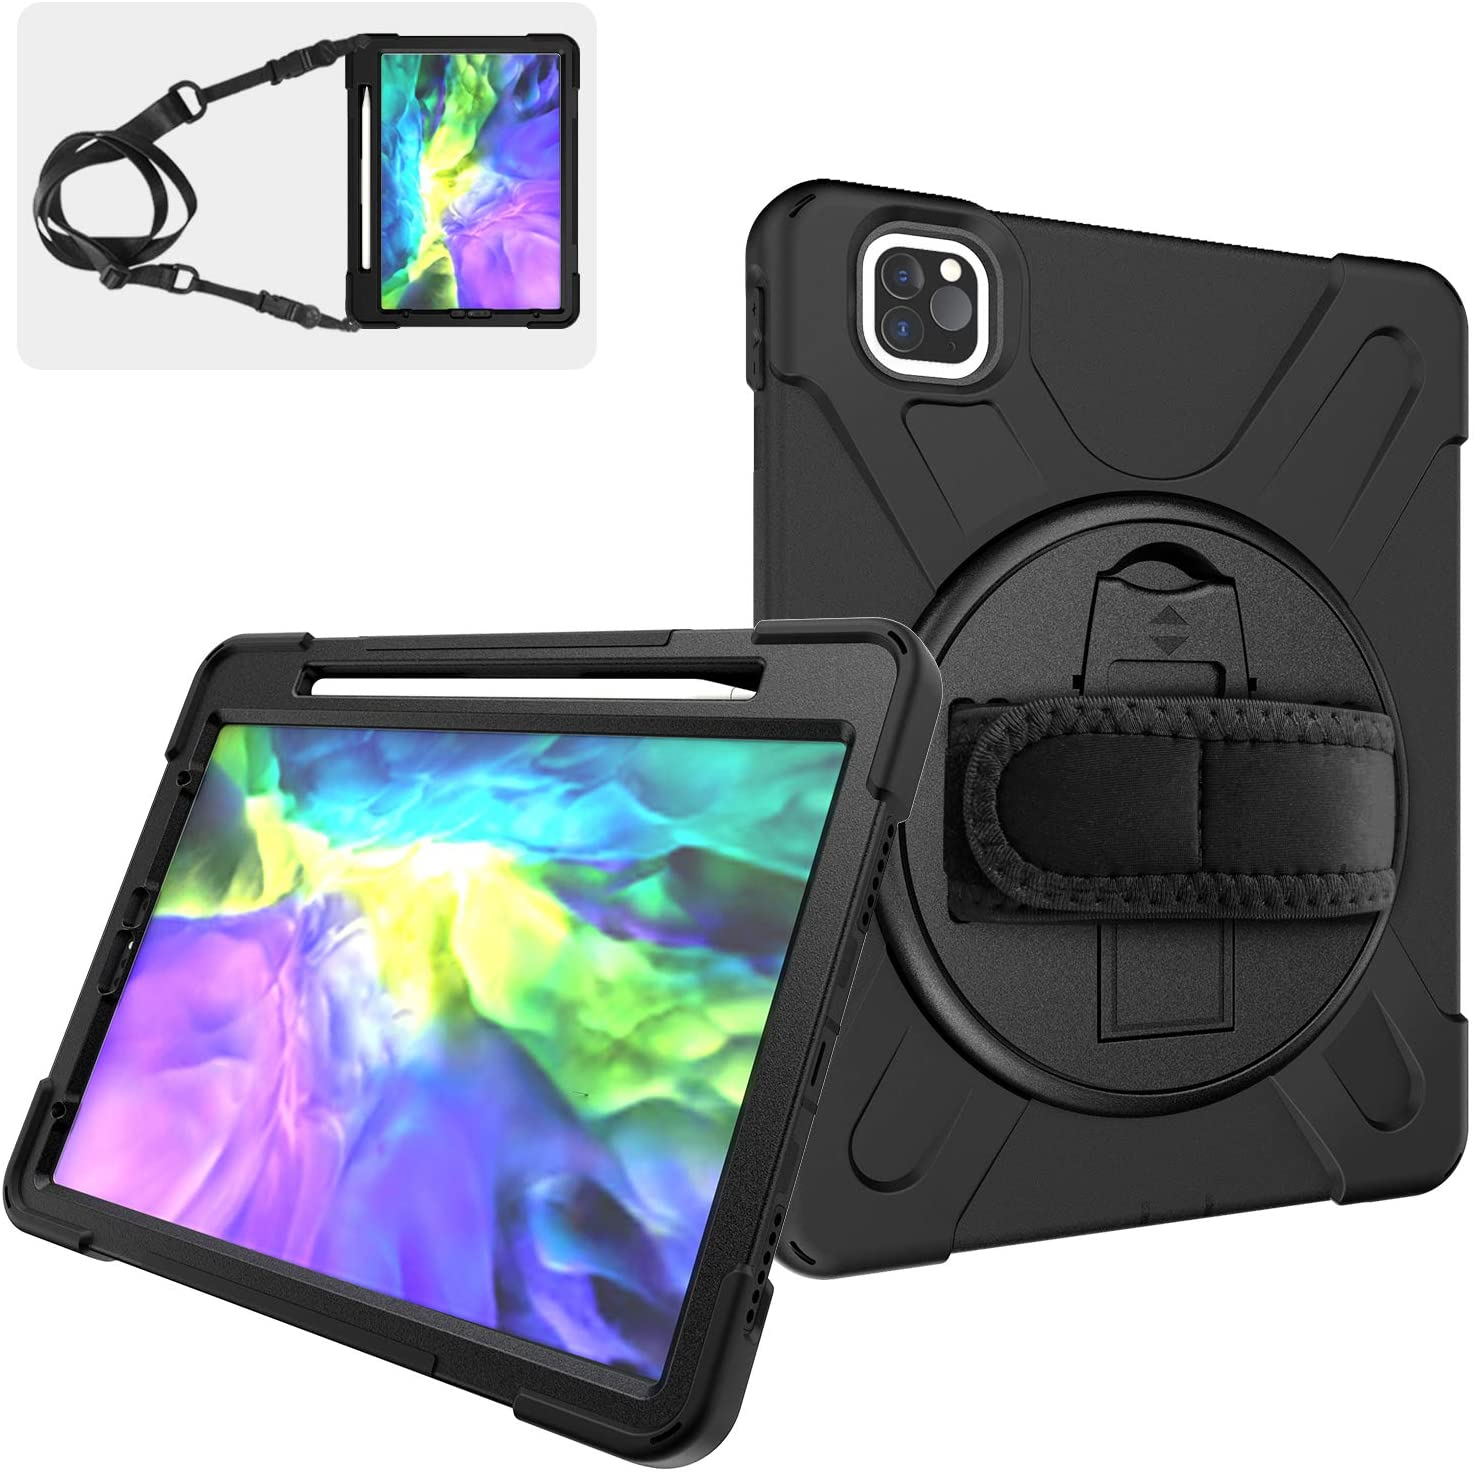 iPad Pro 11 Case 2020 with Pencil Holder | SIBEITU iPad Pro 11 Inch case 2nd Gen/ 1st Gen 2018 with Stand | Hard Durable Rugged Protective Cover w/Handle Strap for iPad Pro Case 11 Inch | Black